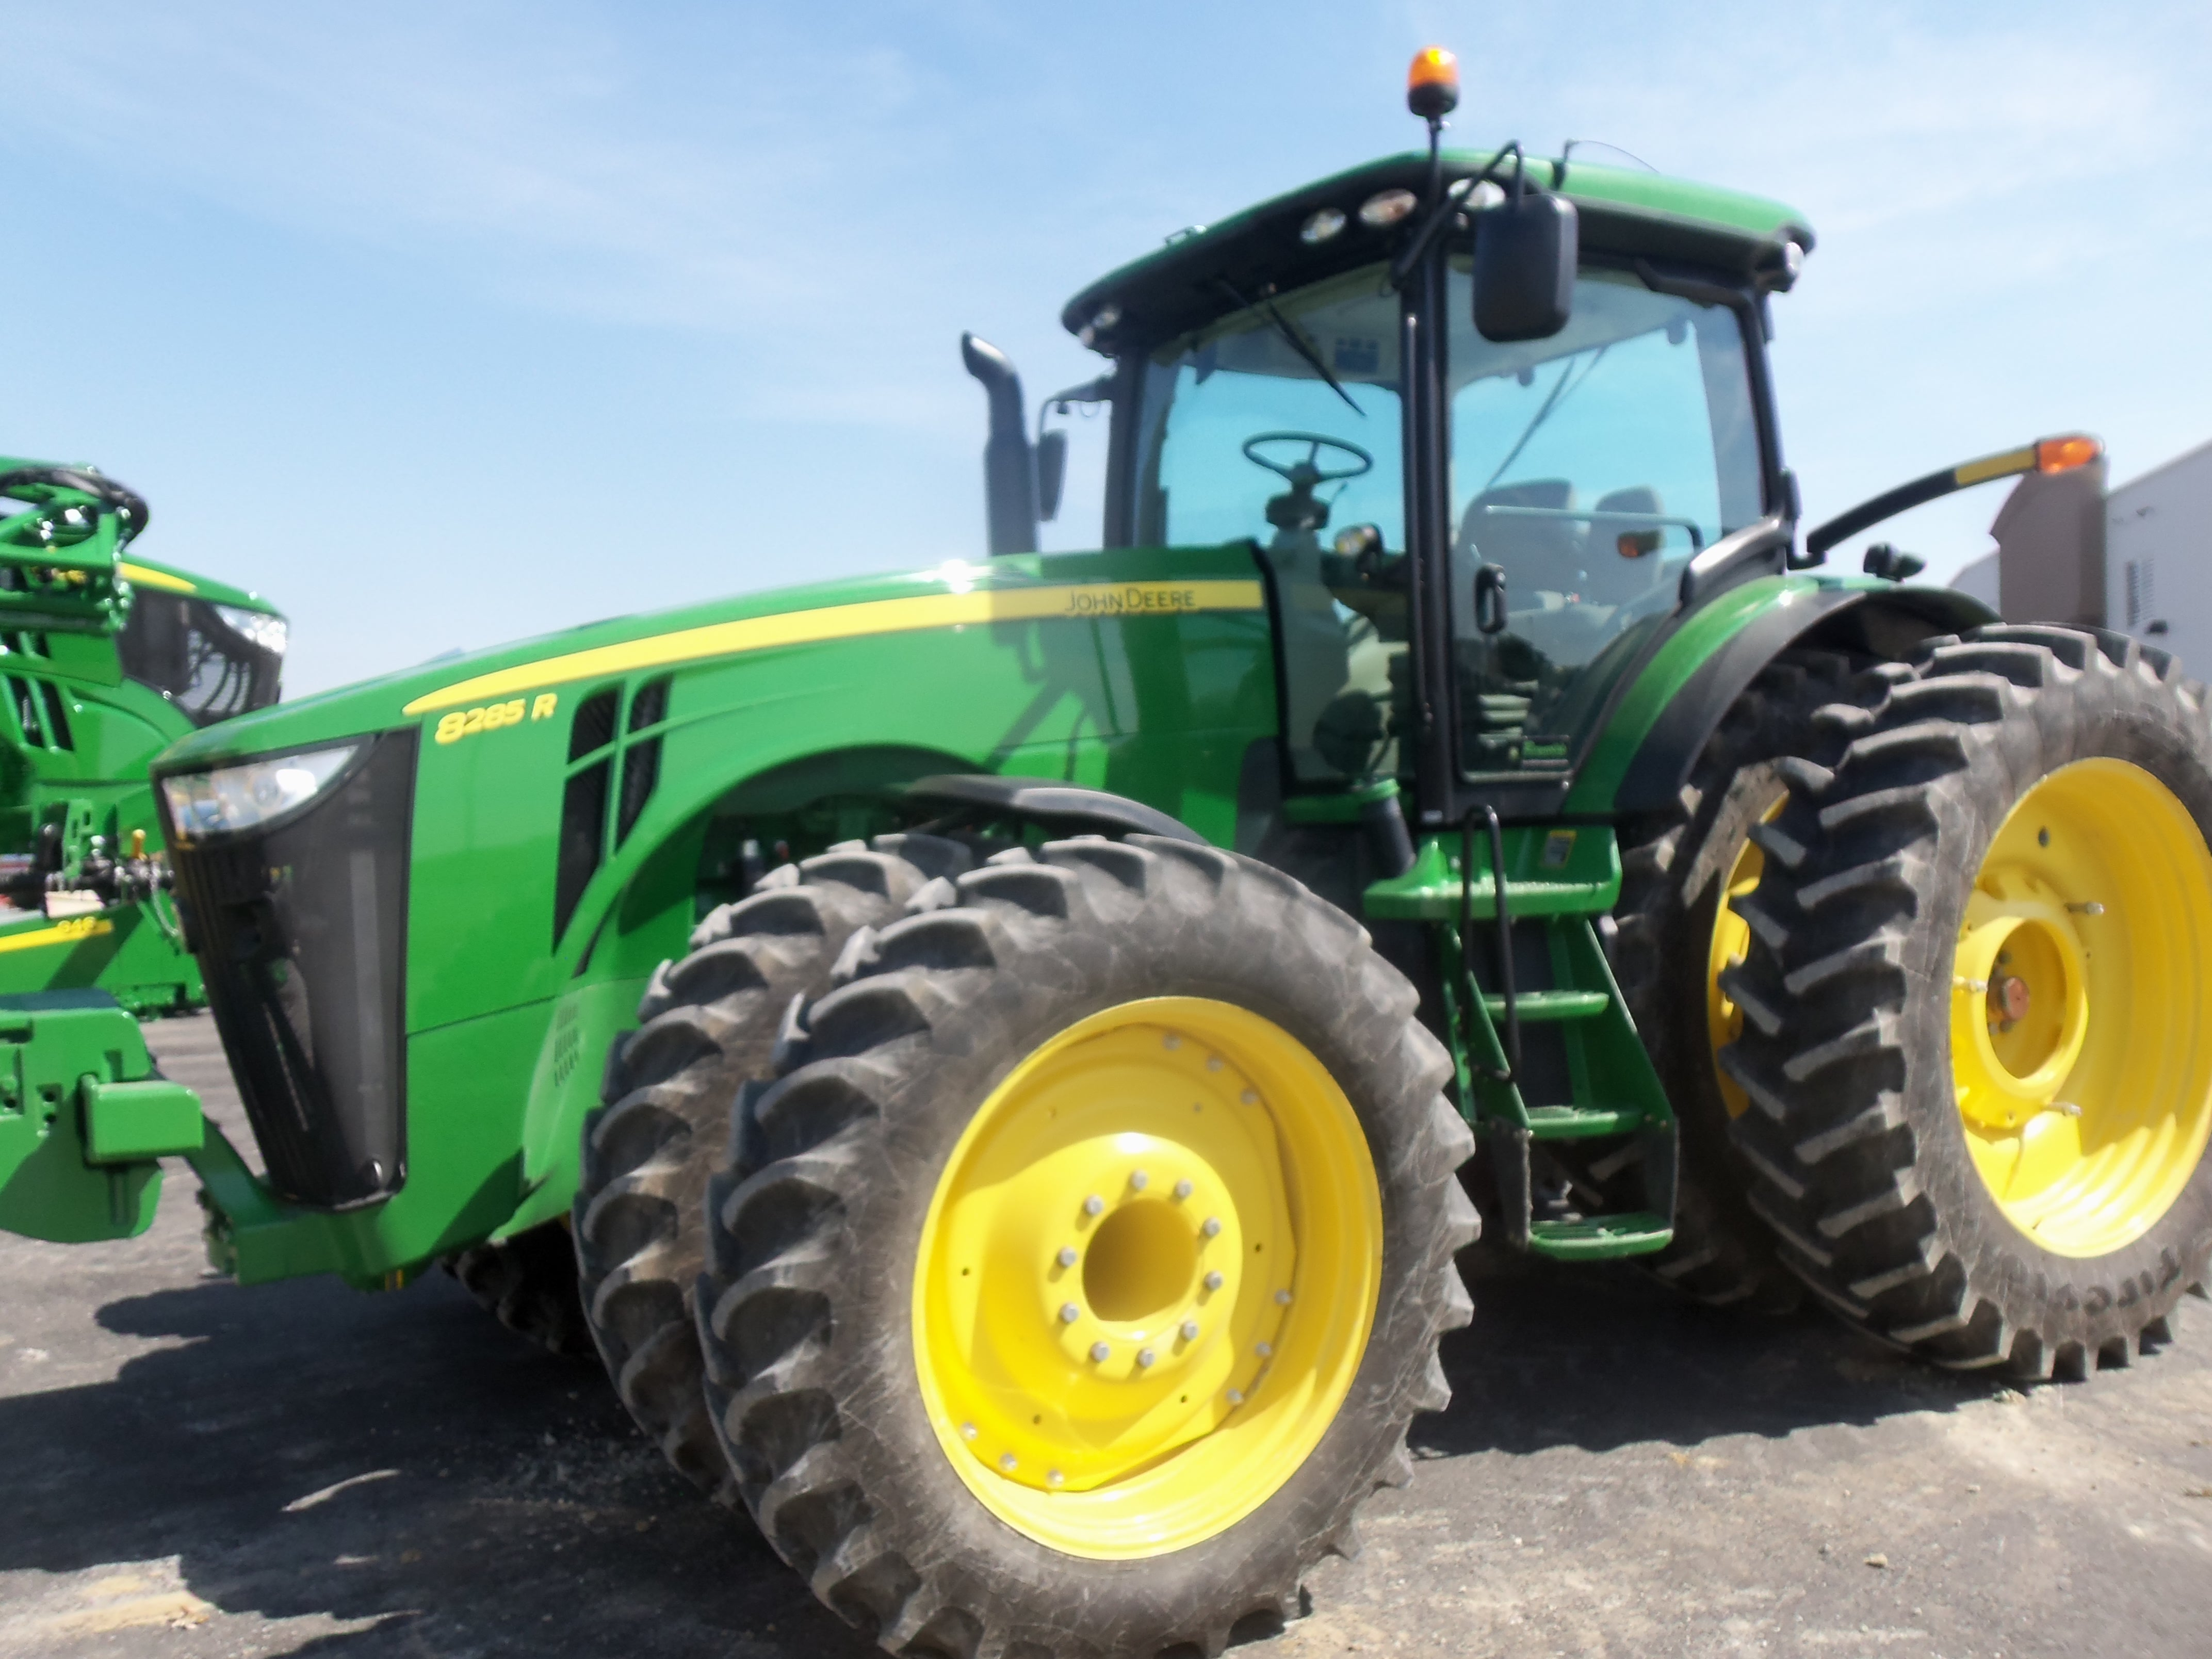 John Deere 8285R row crop tractor. | John Deere equipment | Pinterest